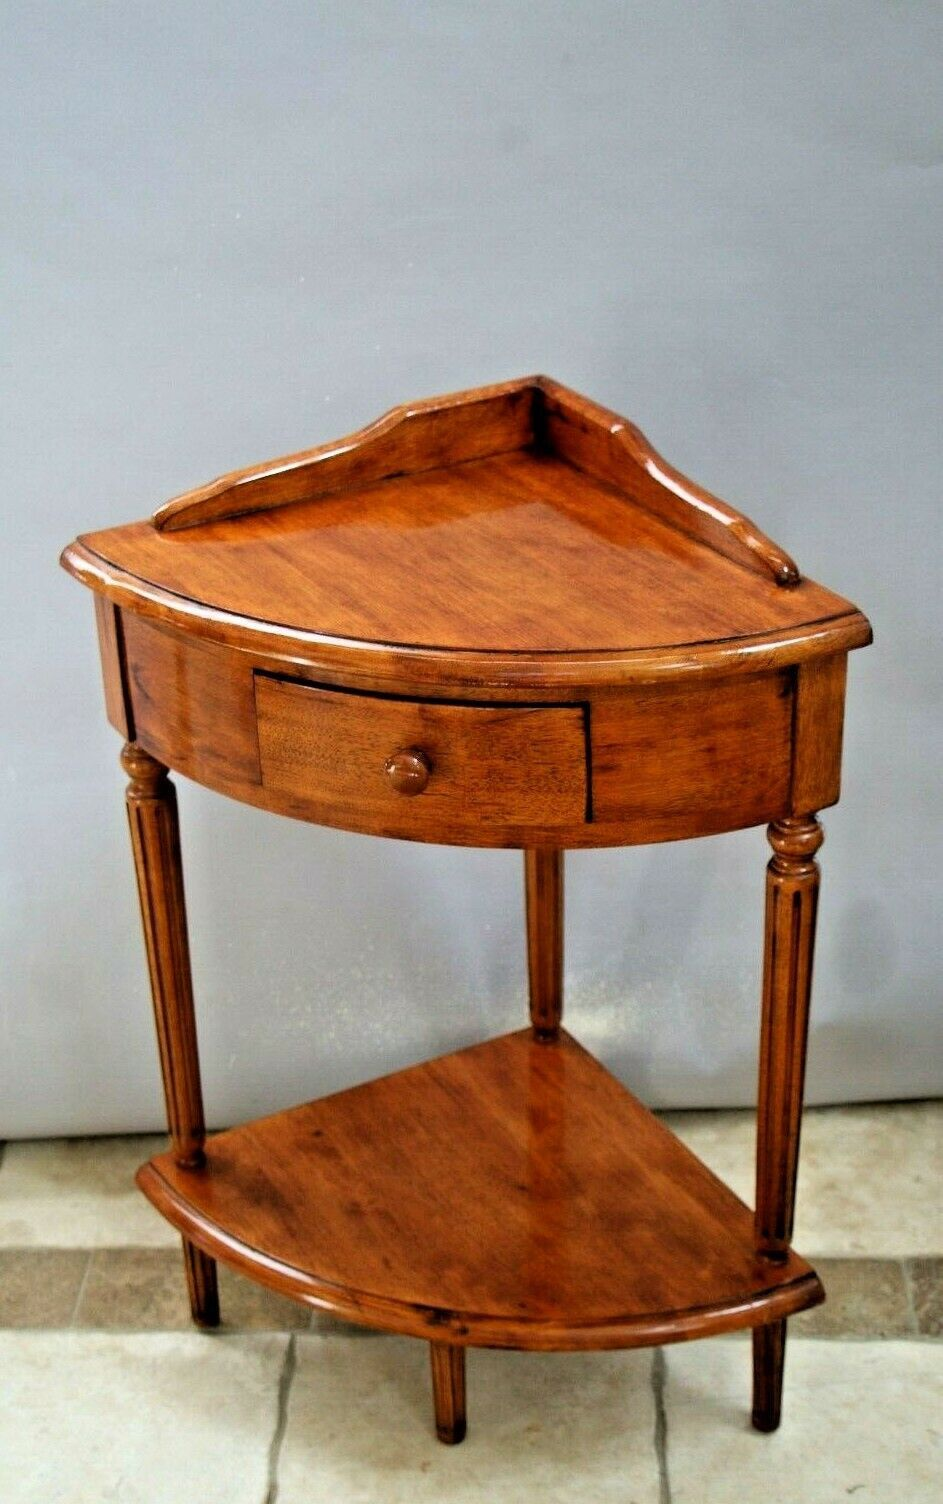 Vintage Corner Side Table With Drawer And Bottom Shelf Solid Walnut Pie Shape Side Table With Drawer Side Table End Tables With Drawers